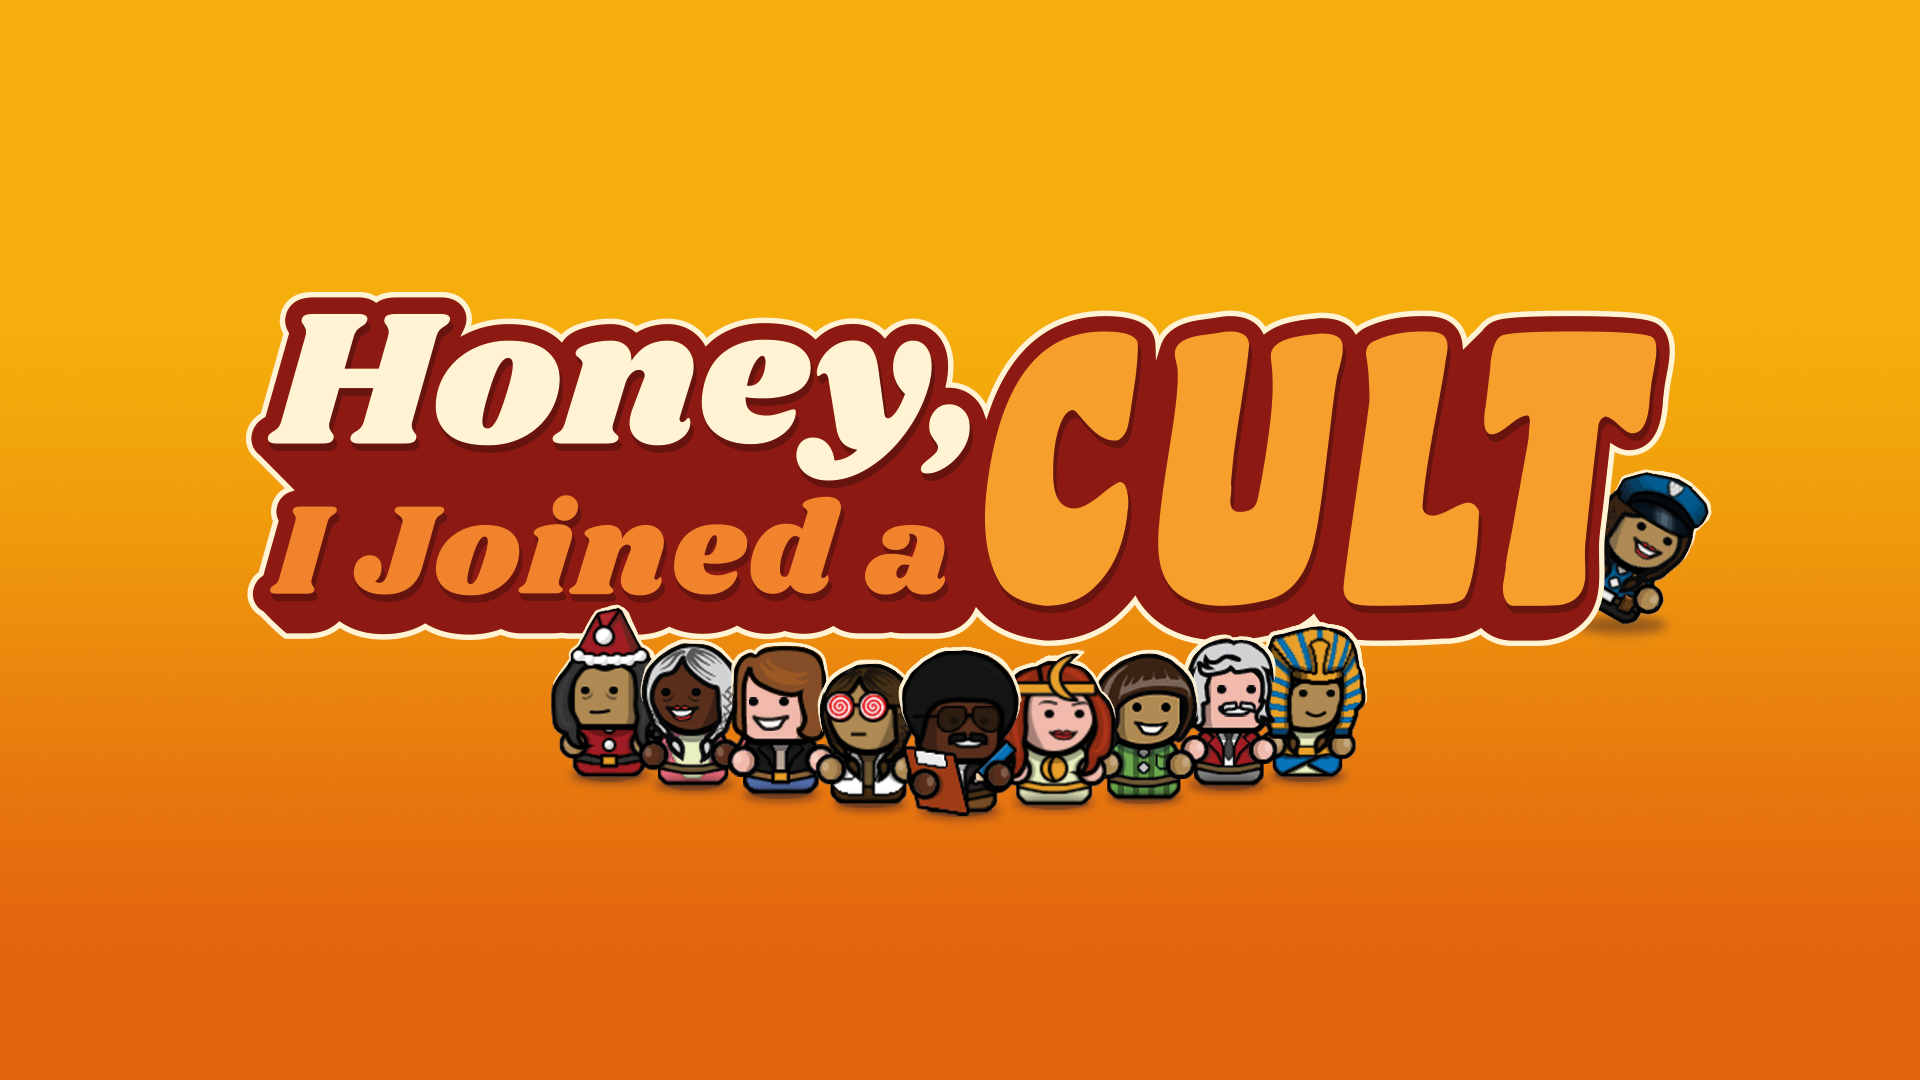 Introducing Honey, I Joined a Cult!